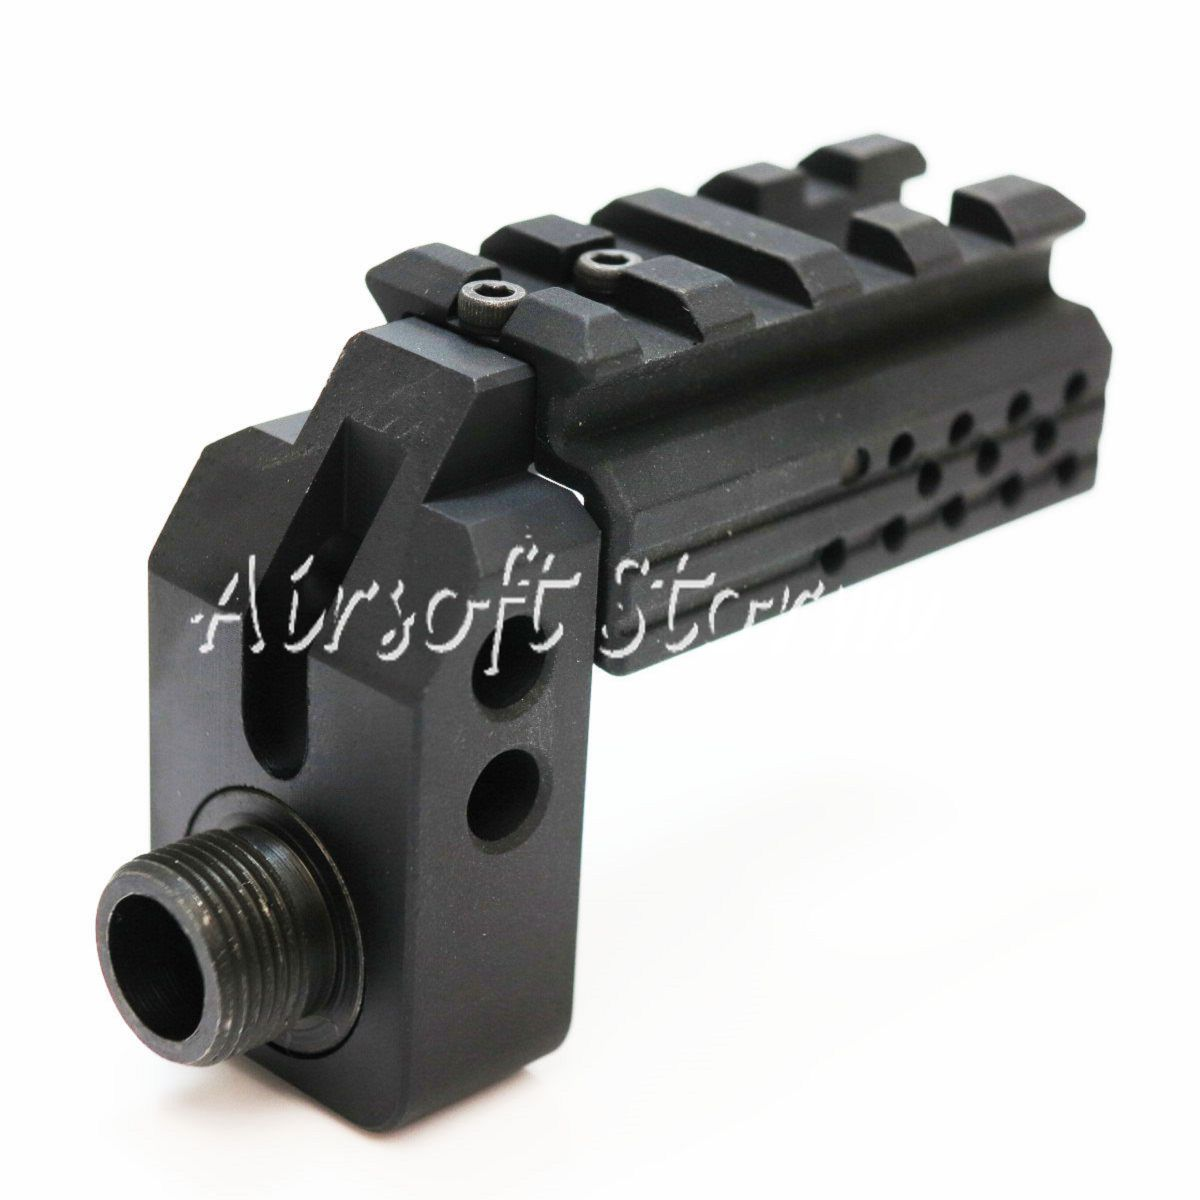 Shooting Gear 5KU SAS Front Kit for Marui G17 G18C G17Custom